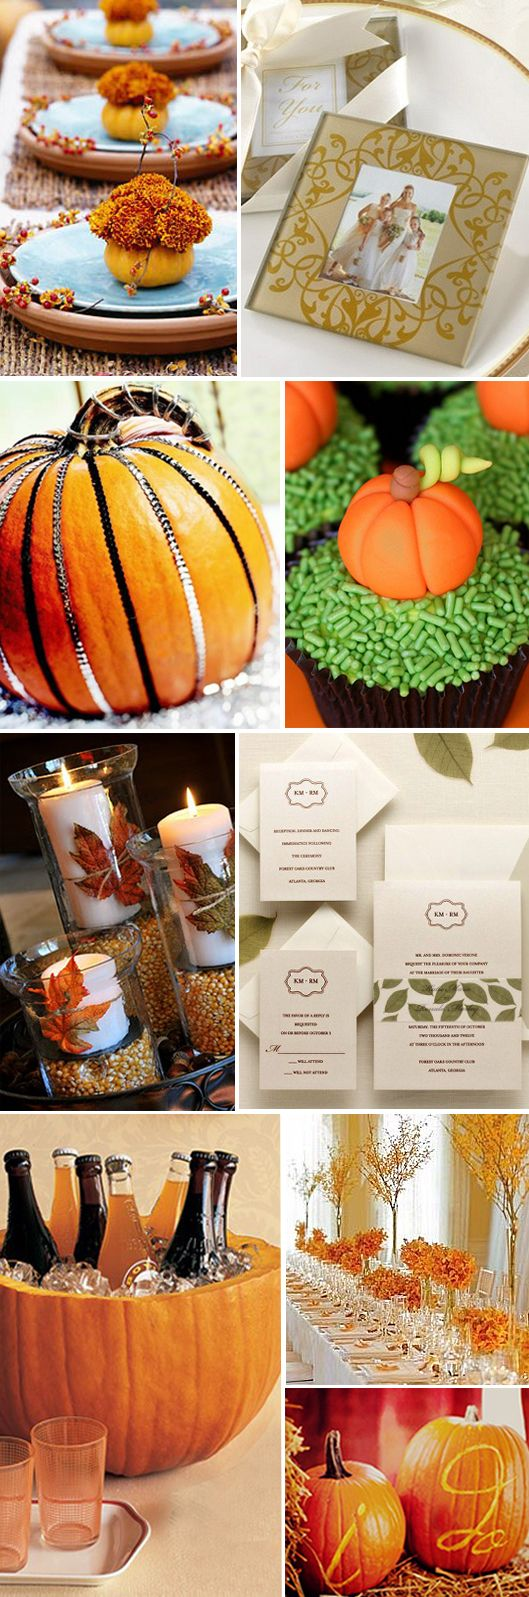 best autumn images on pinterest fall crafts floral